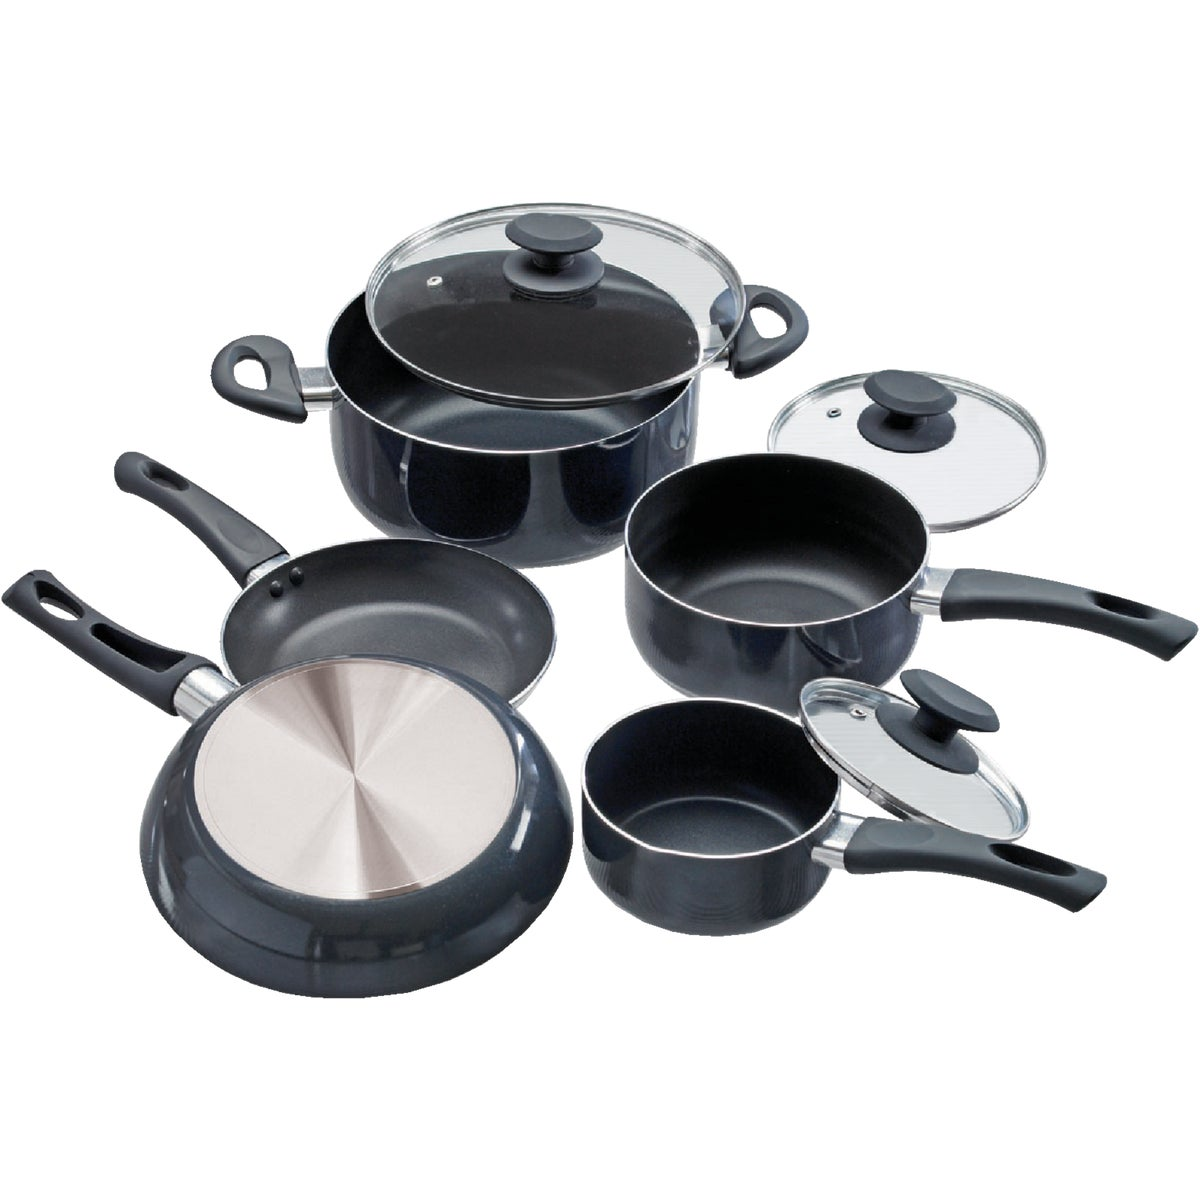 8PC COOKWARE SET - EEGY-1208 by Epoca Inc